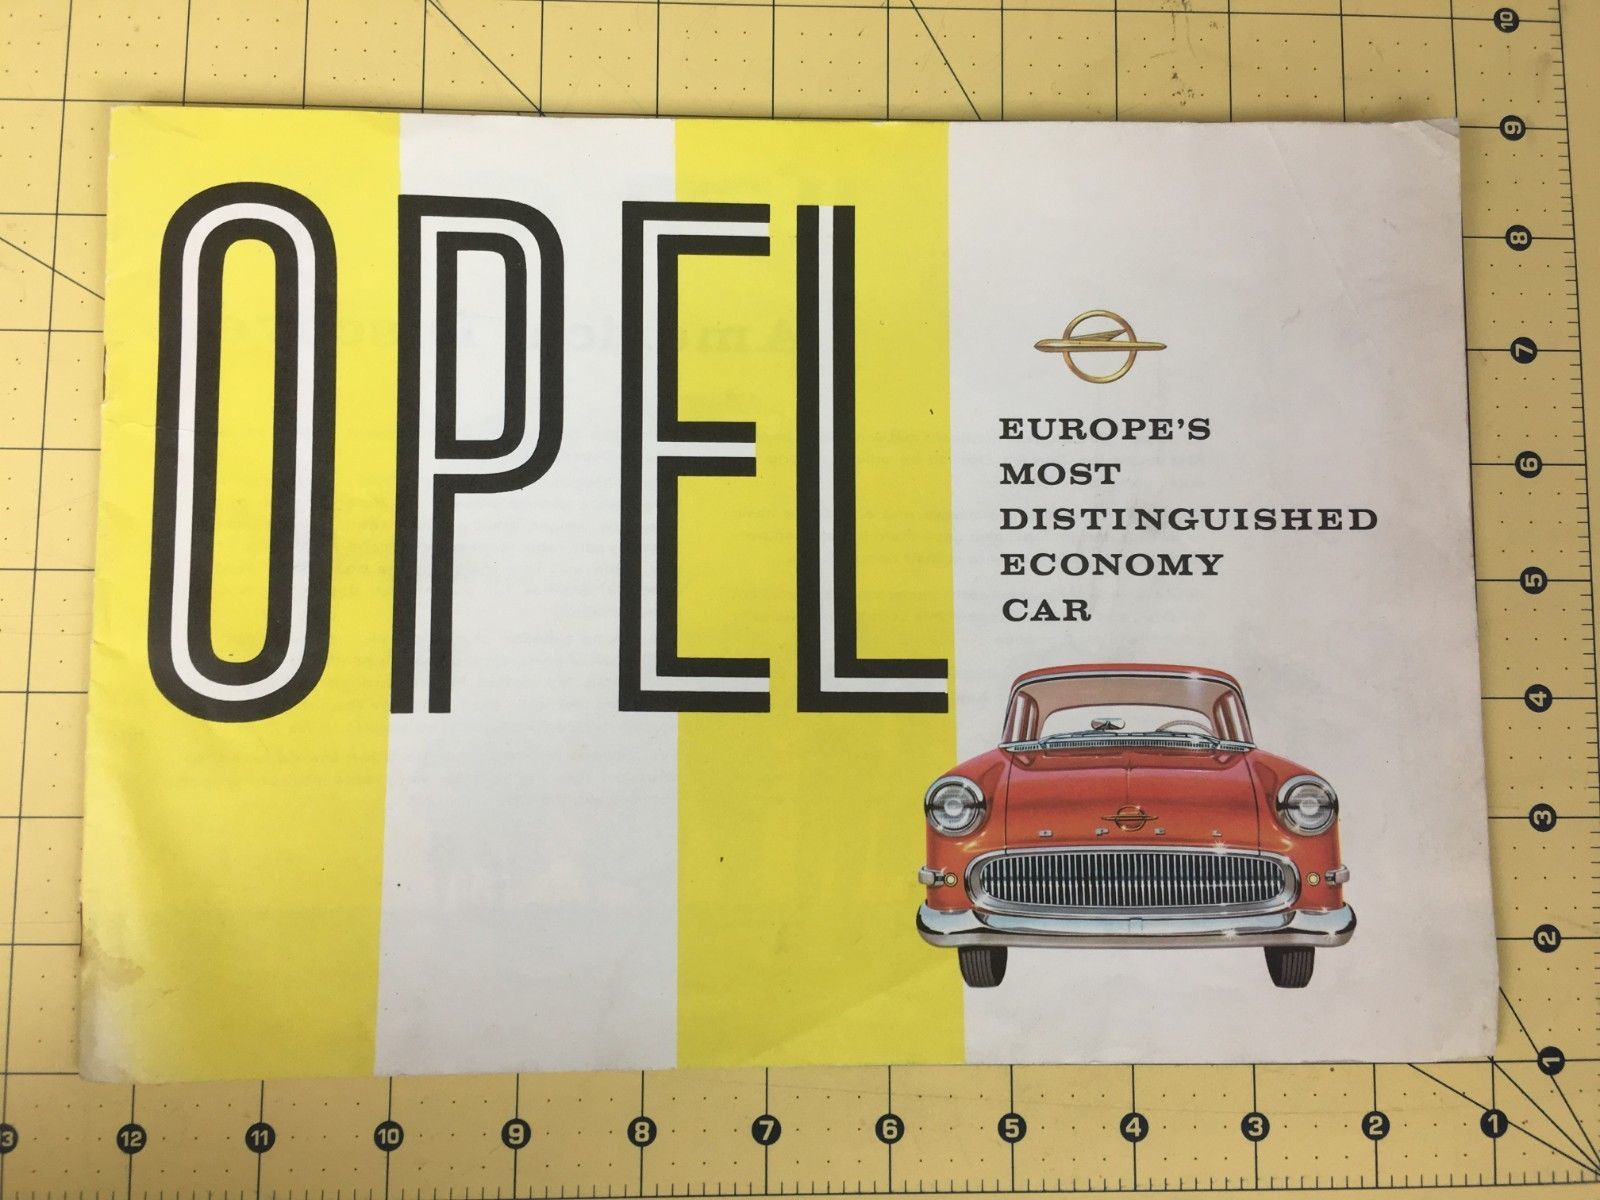 Primary image for 1957 Opel Brochure Rekord Caravan Europe's Most Distinguished Economy Car